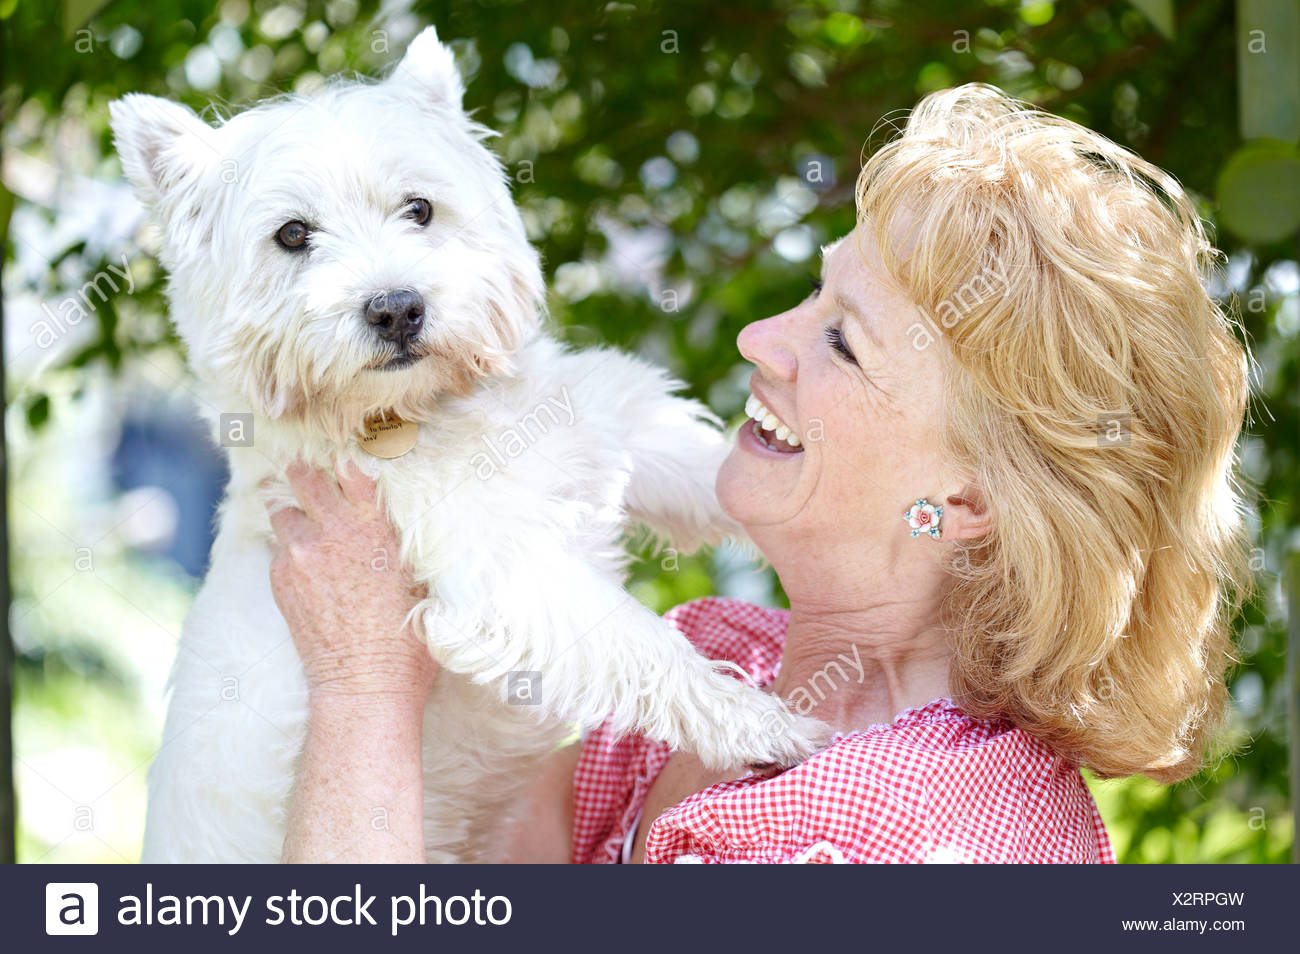 Woman with pet dog Stock Photo